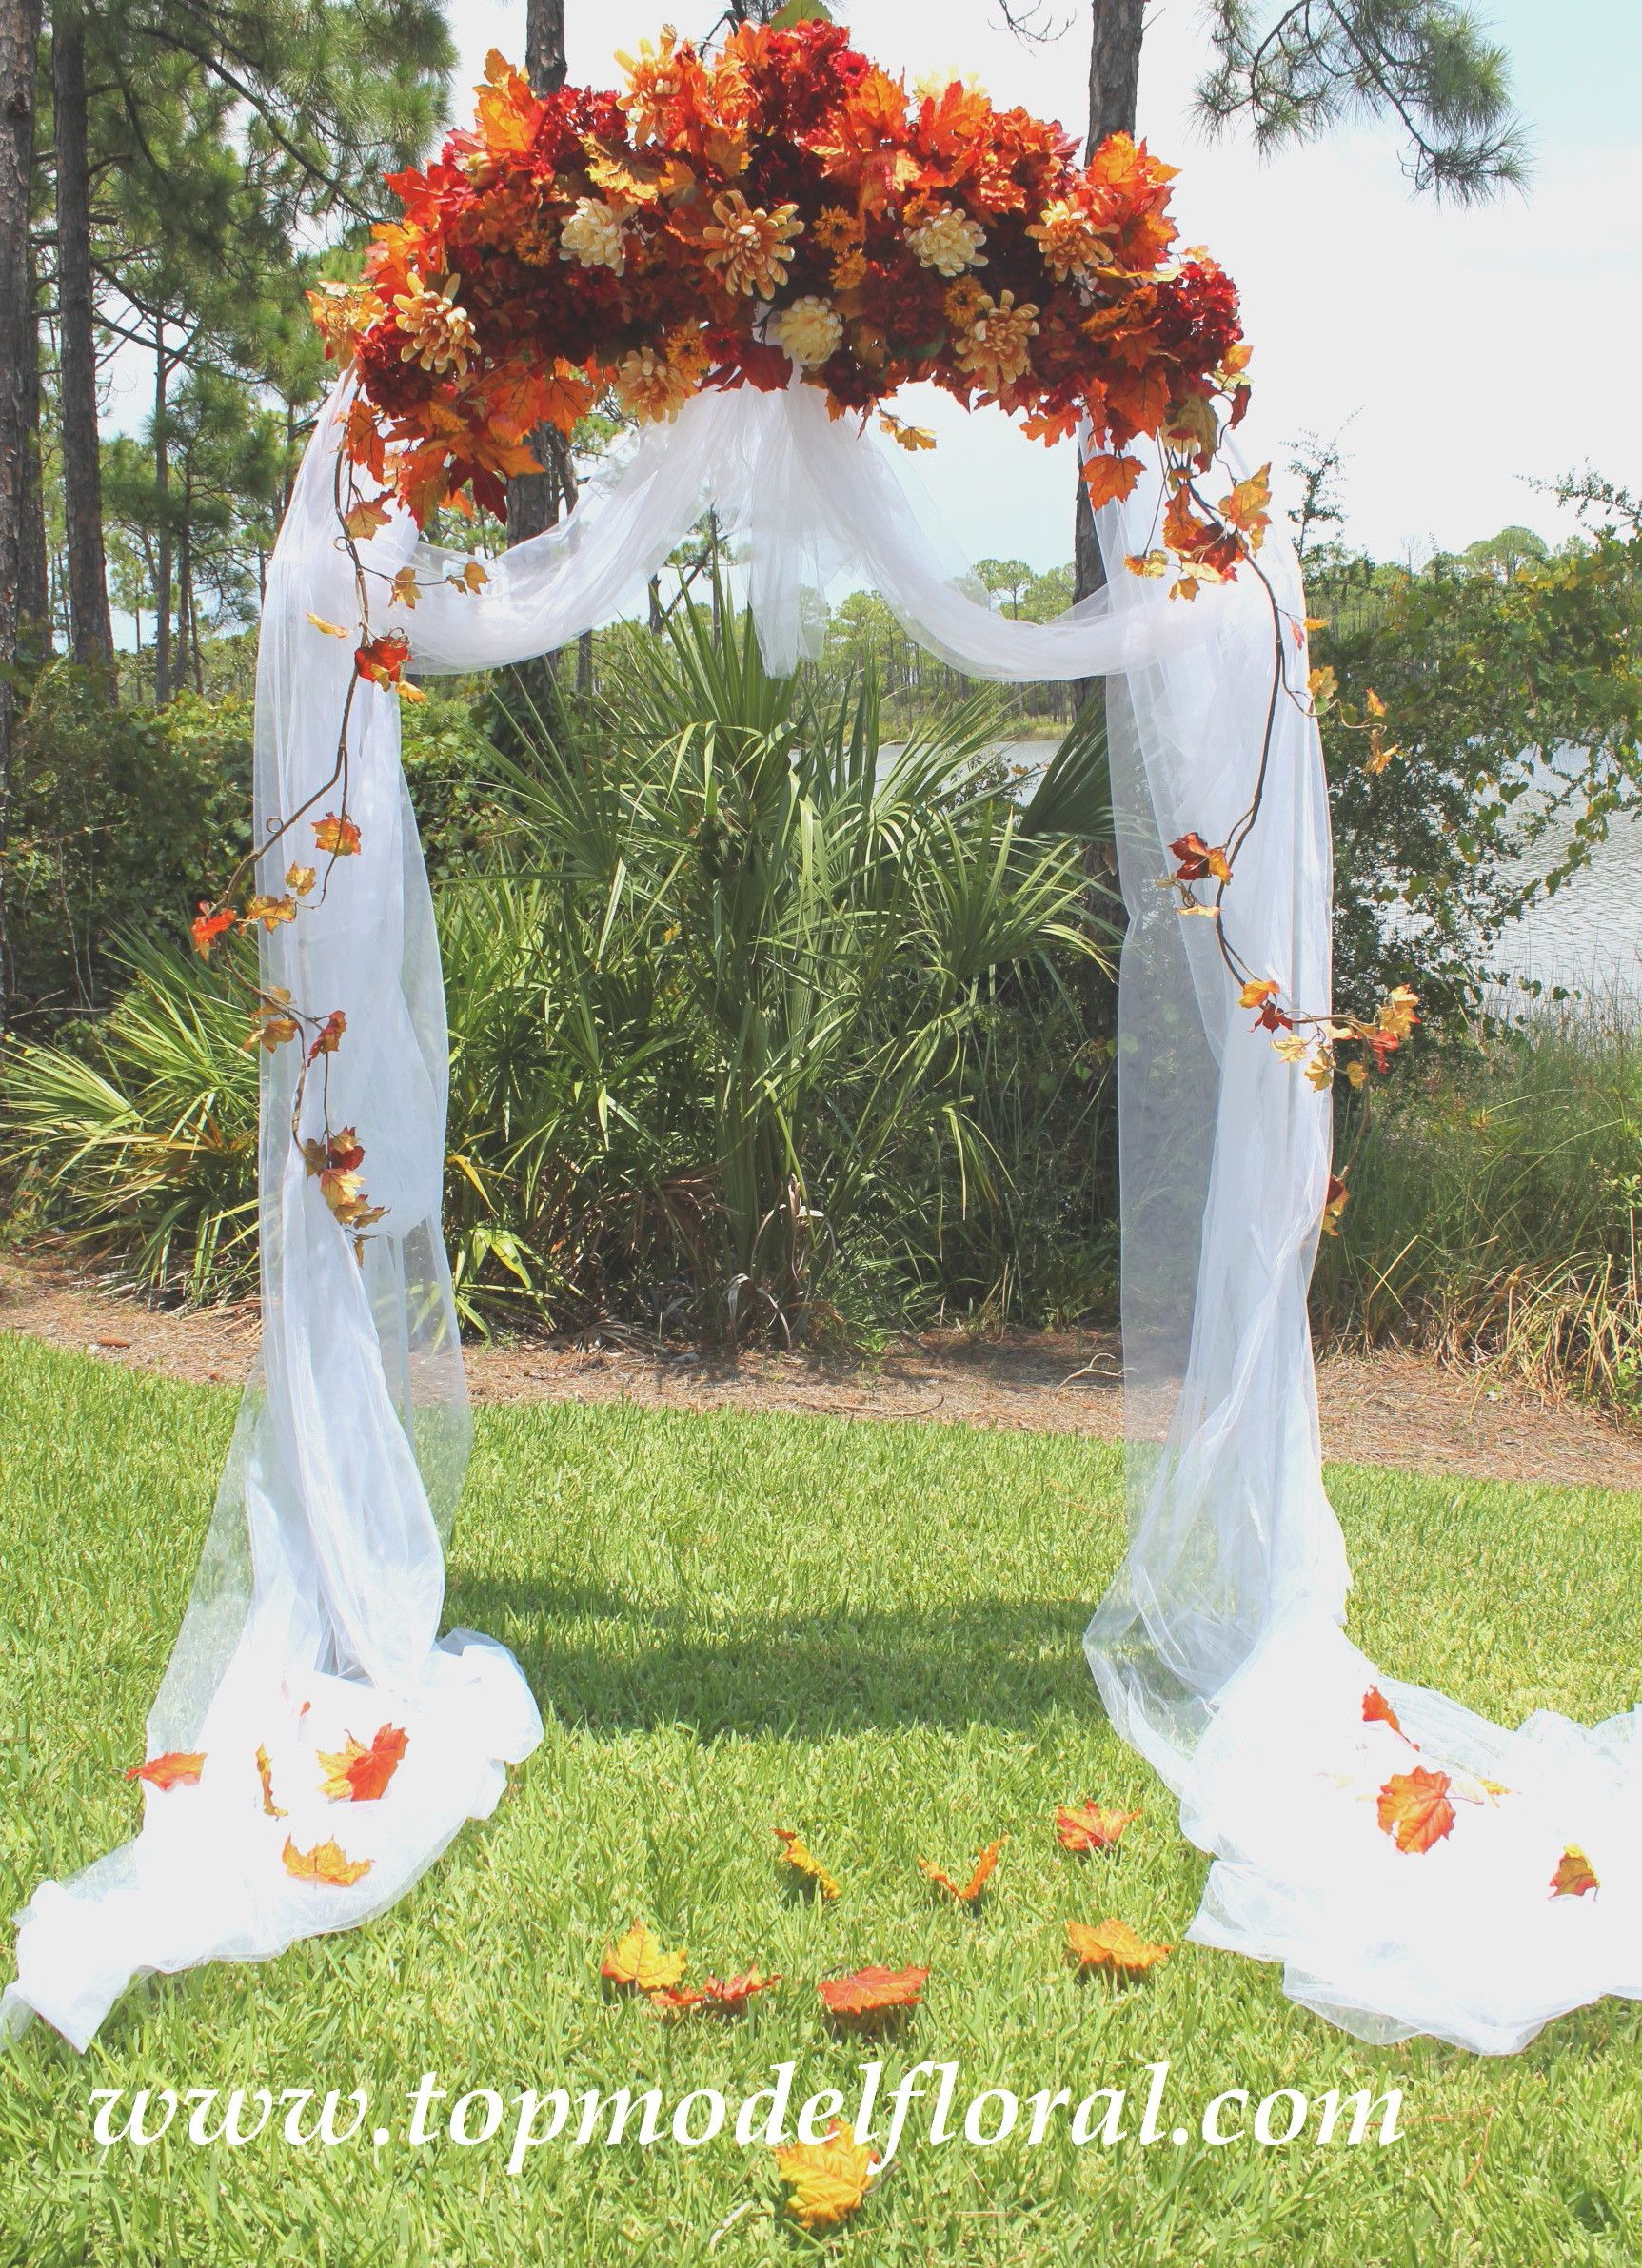 Outdoor fall wedding decorating ideas - Outdoor Fall Wedding Decorating Ideas